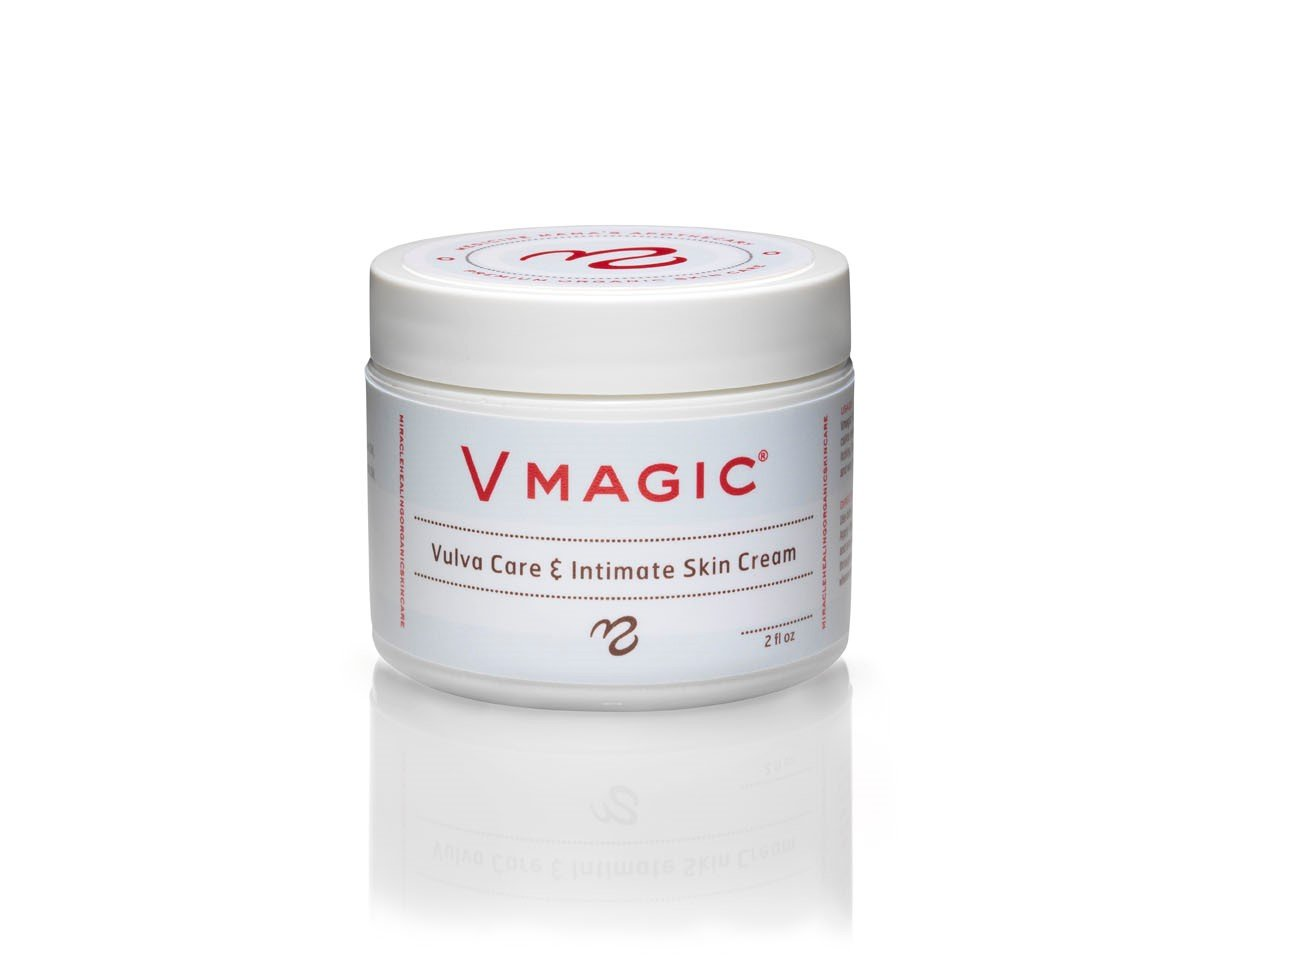 Vmagic Organic Vulva Balm & Intimate Skin Care, Feminine Irritation Relief-  Relieves Dryness,